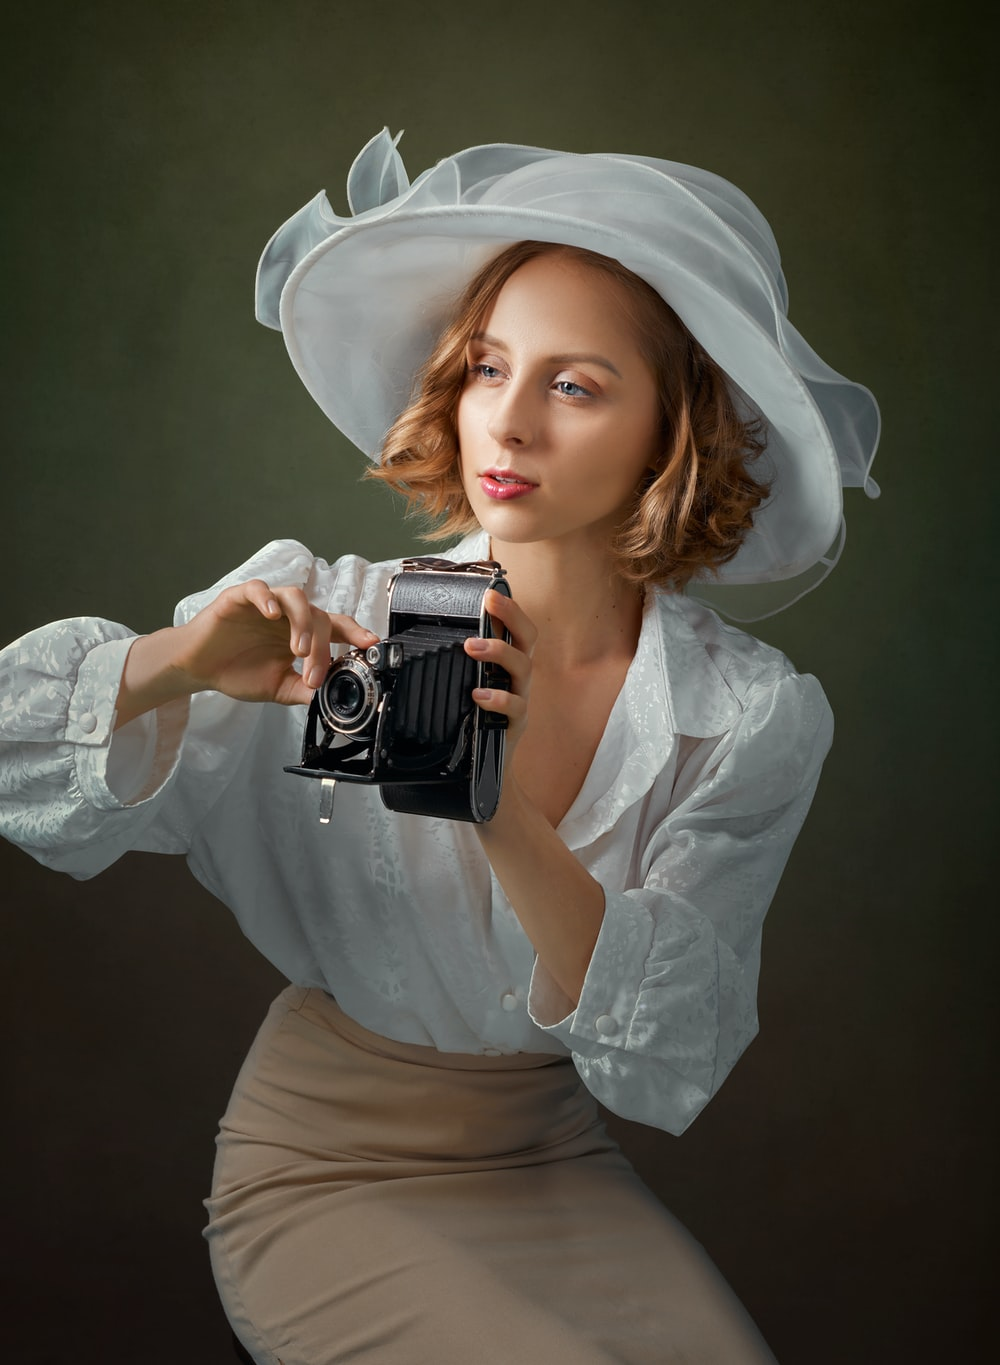 woman in white long sleeve shirt holding black and silver camera